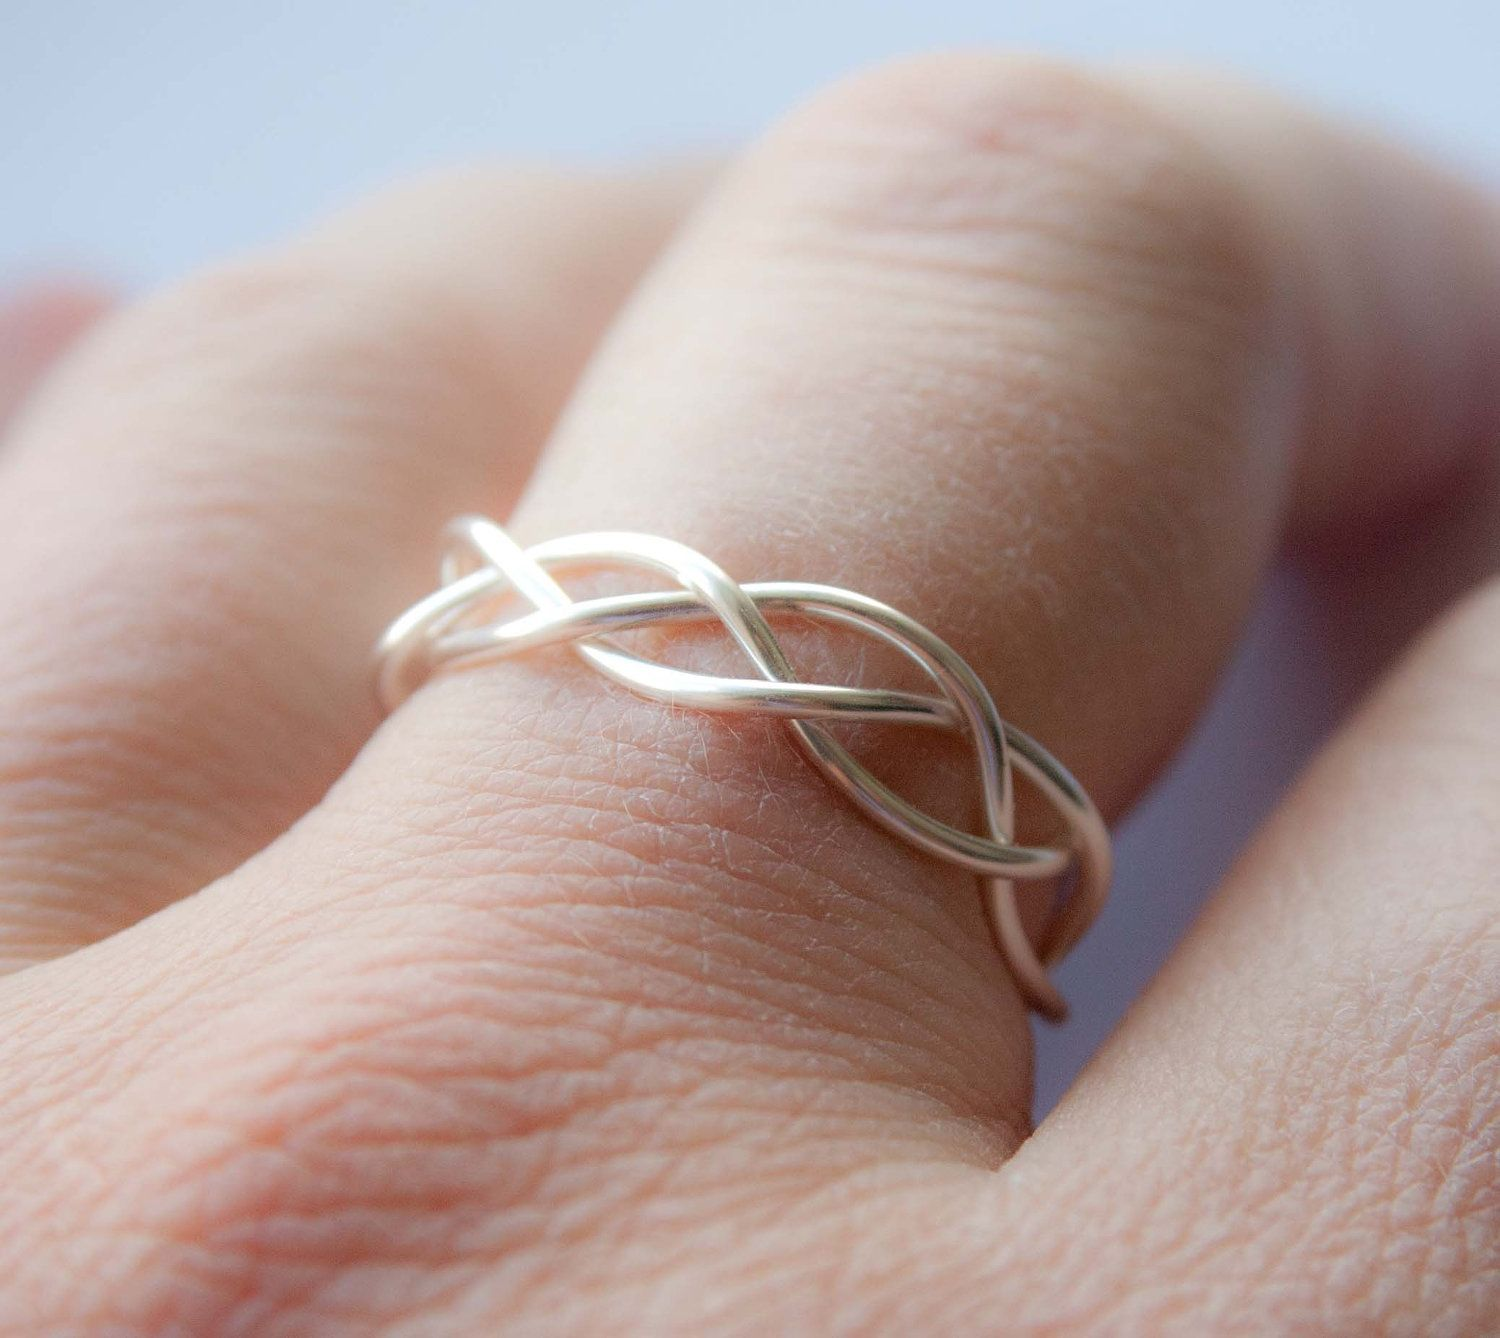 Braided wedding band to go with a solitaire engagement ring